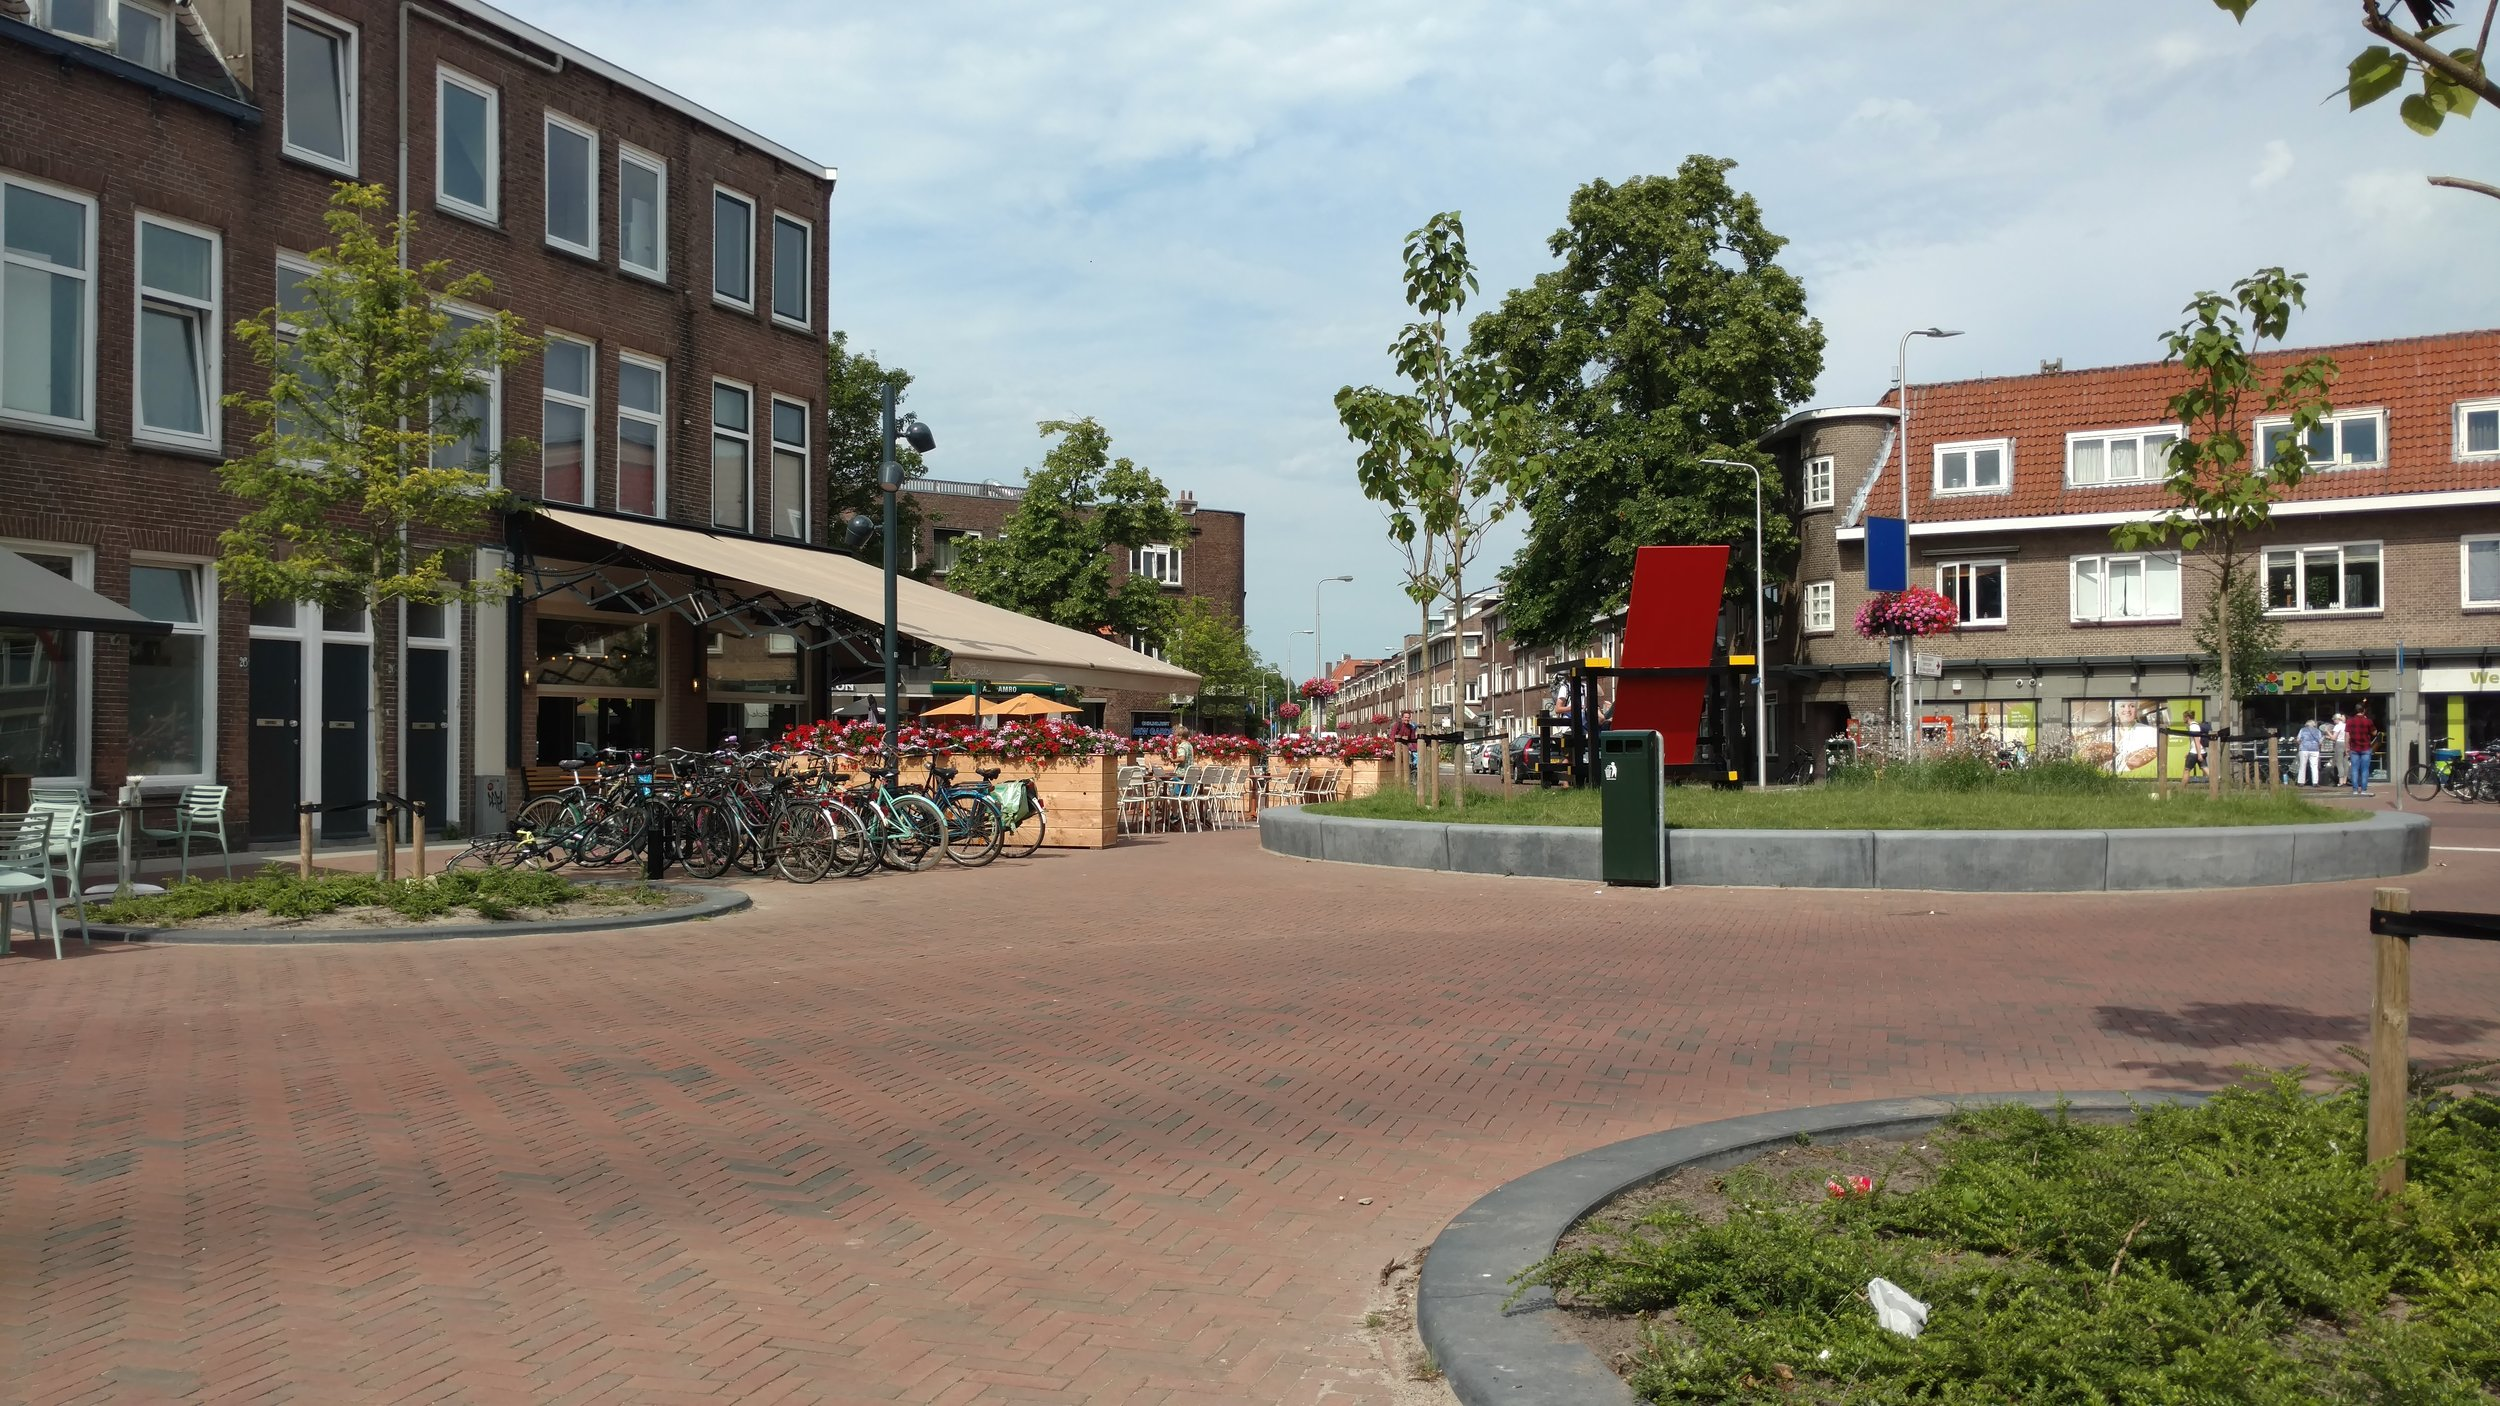 The intersection where cars can still technically travel, but the street design signals that the space is more for bikes and pedestrians.